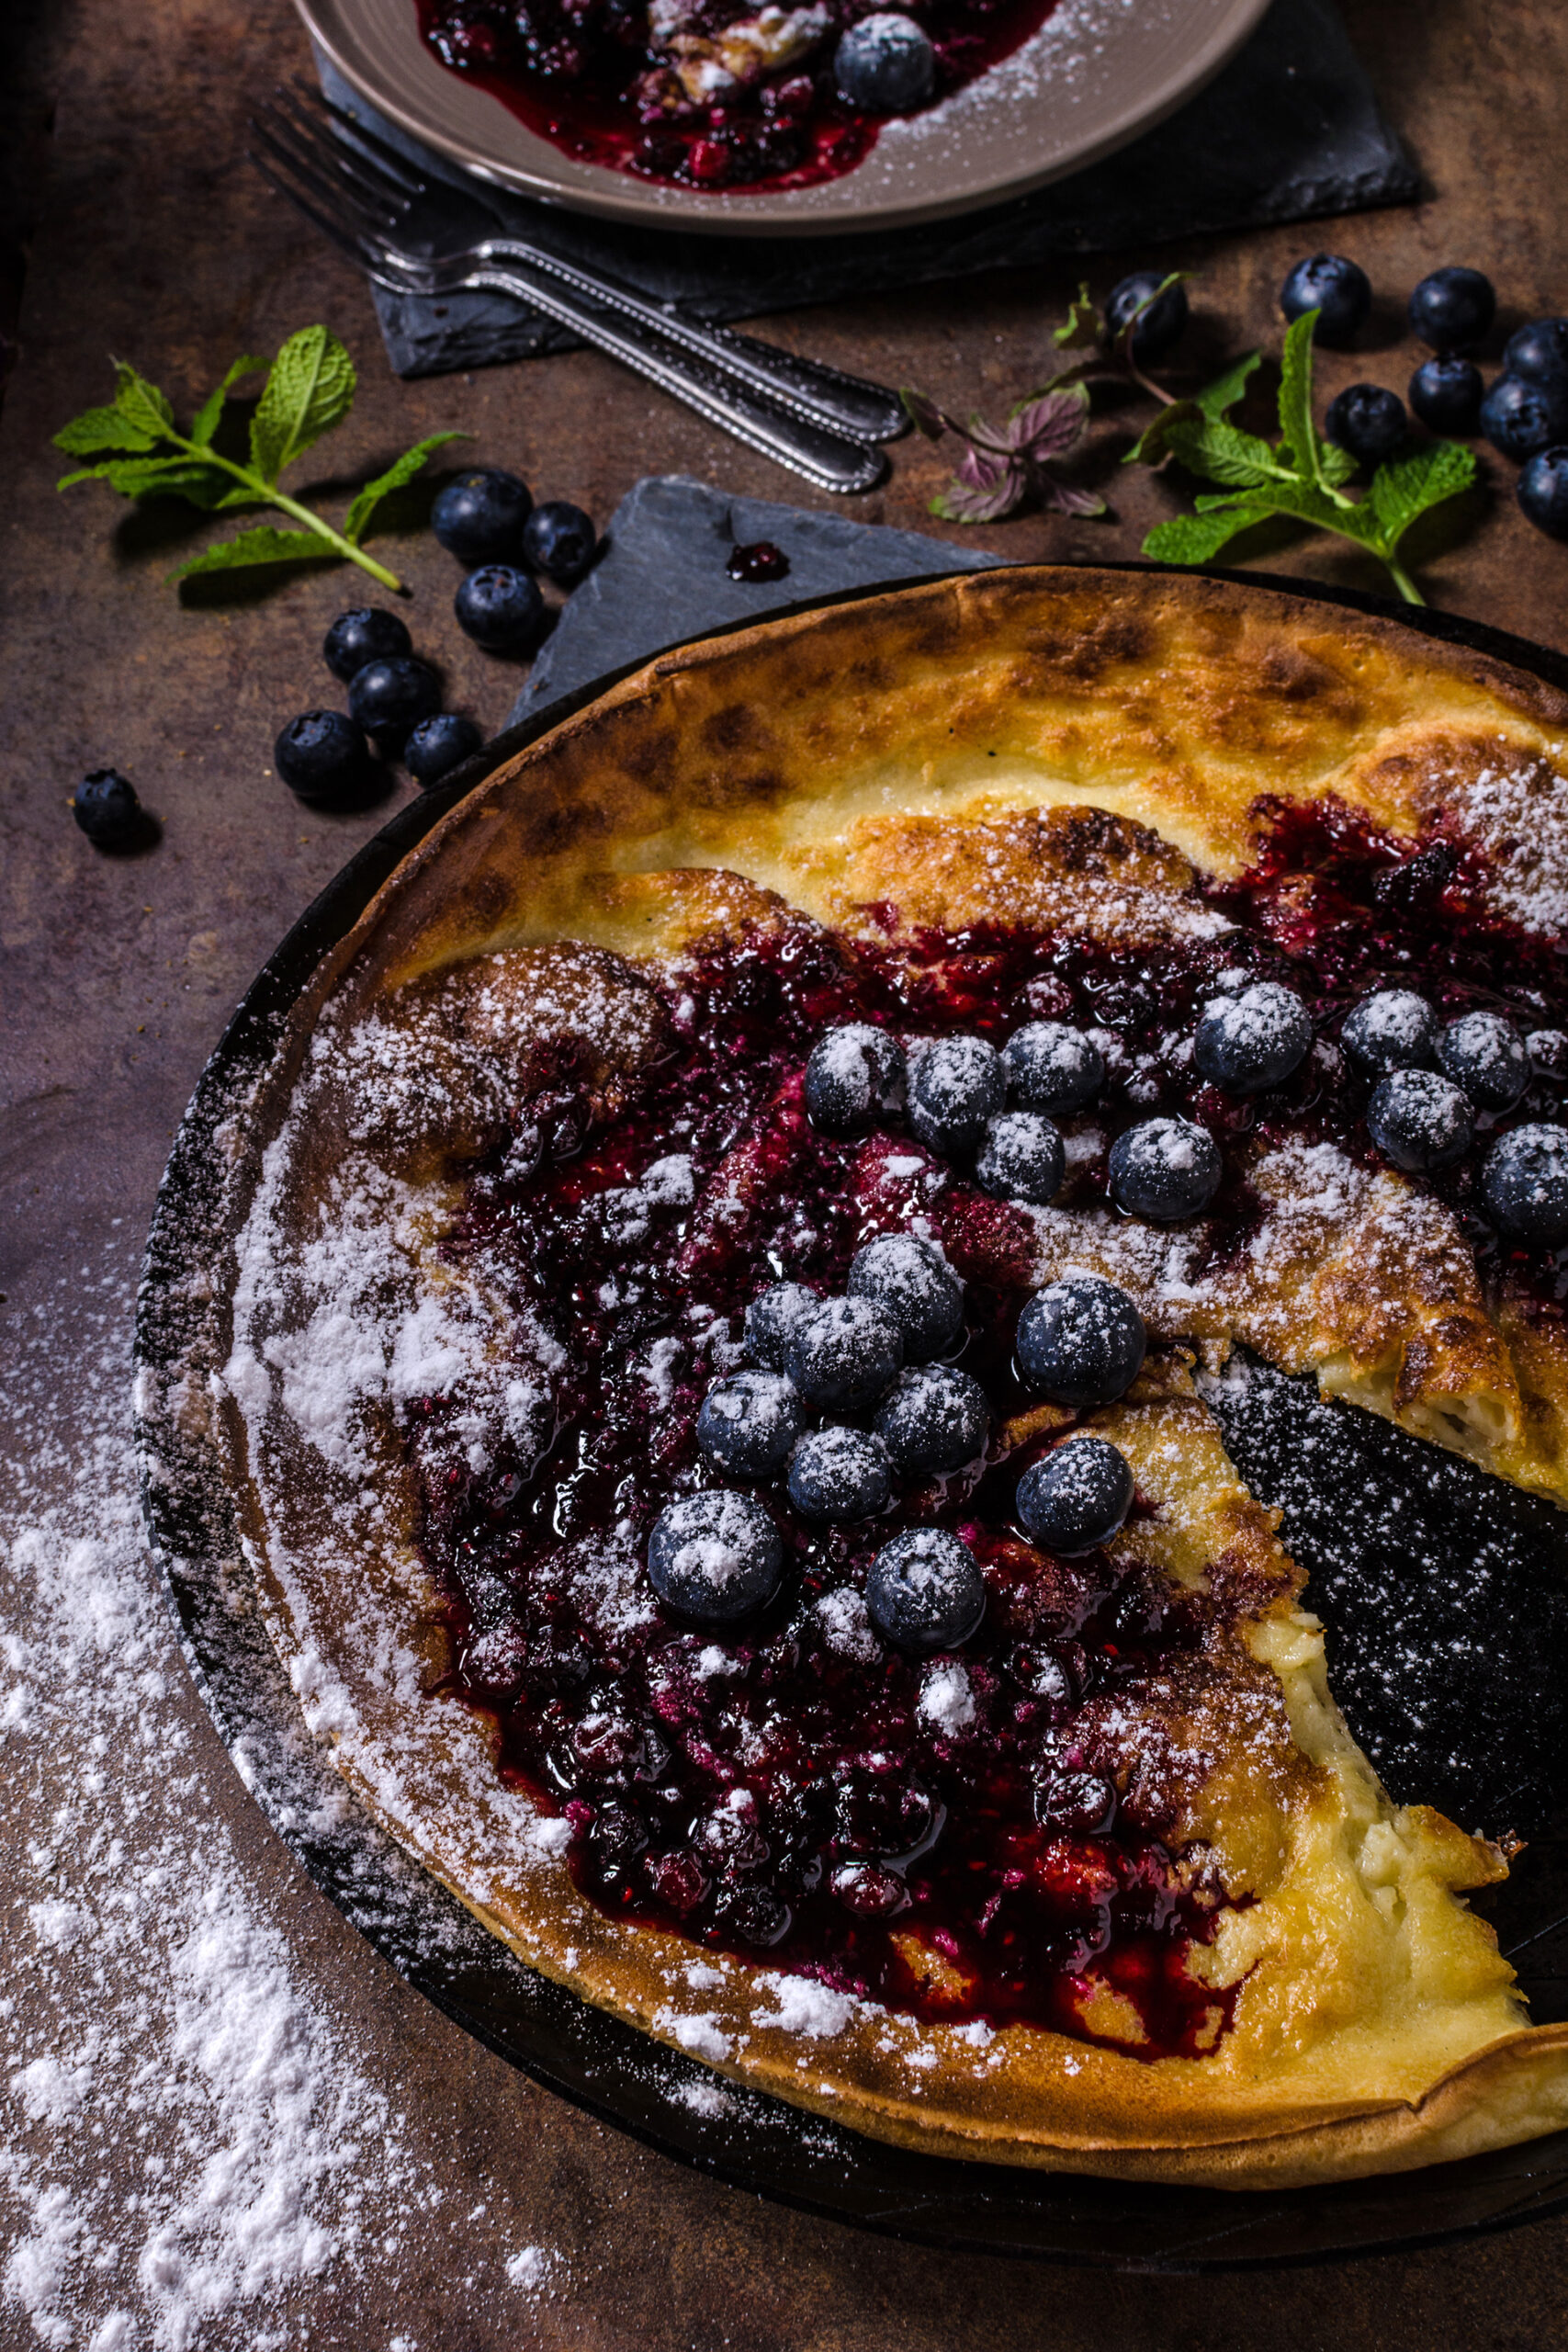 Unwiderstehlich: Blueberry Dutch Baby Pancake